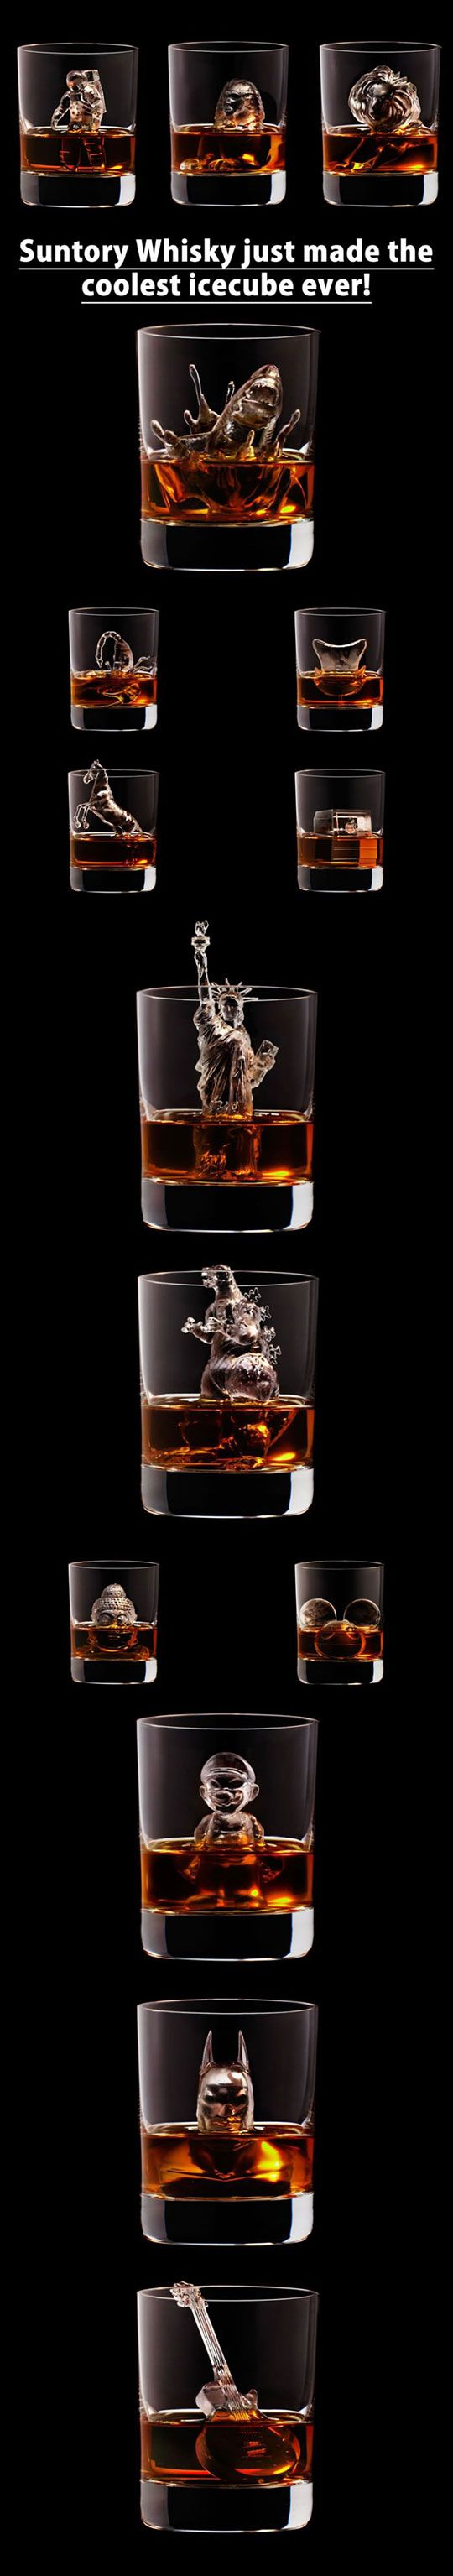 The Coolest Ice Cube Ever